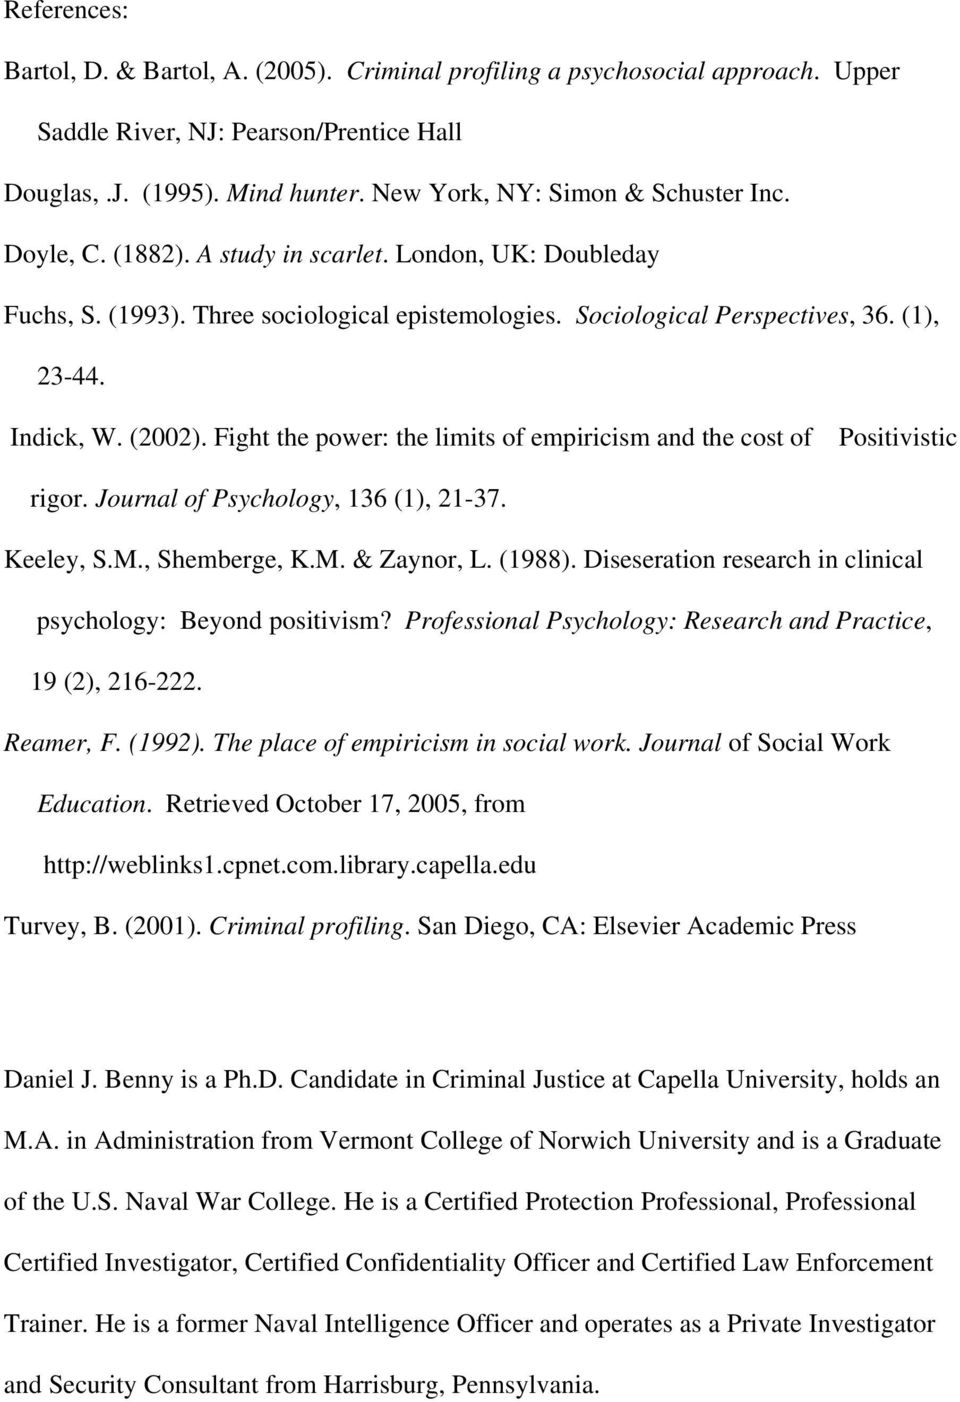 Indick, W. (2002). Fight the power: the limits of empiricism and the cost of Positivistic rigor. Journal of Psychology, 136 (1), 21-37. Keeley, S.M., Shemberge, K.M. & Zaynor, L. (1988).